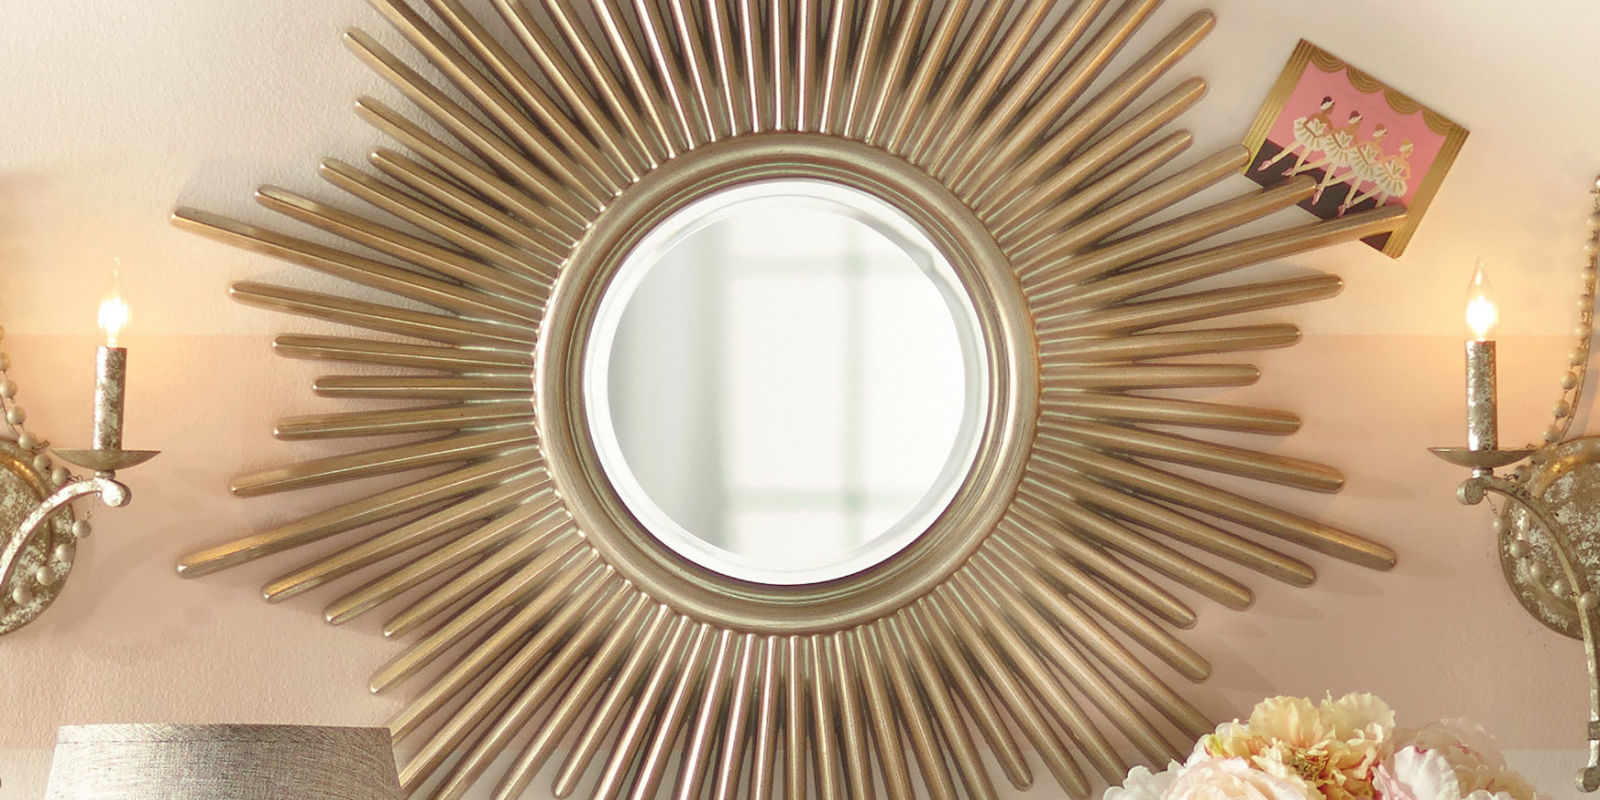 12 best sunburst mirrors in 2018 decorative small and large sunburst wall mirrors - Wall decor mirror home accents ...